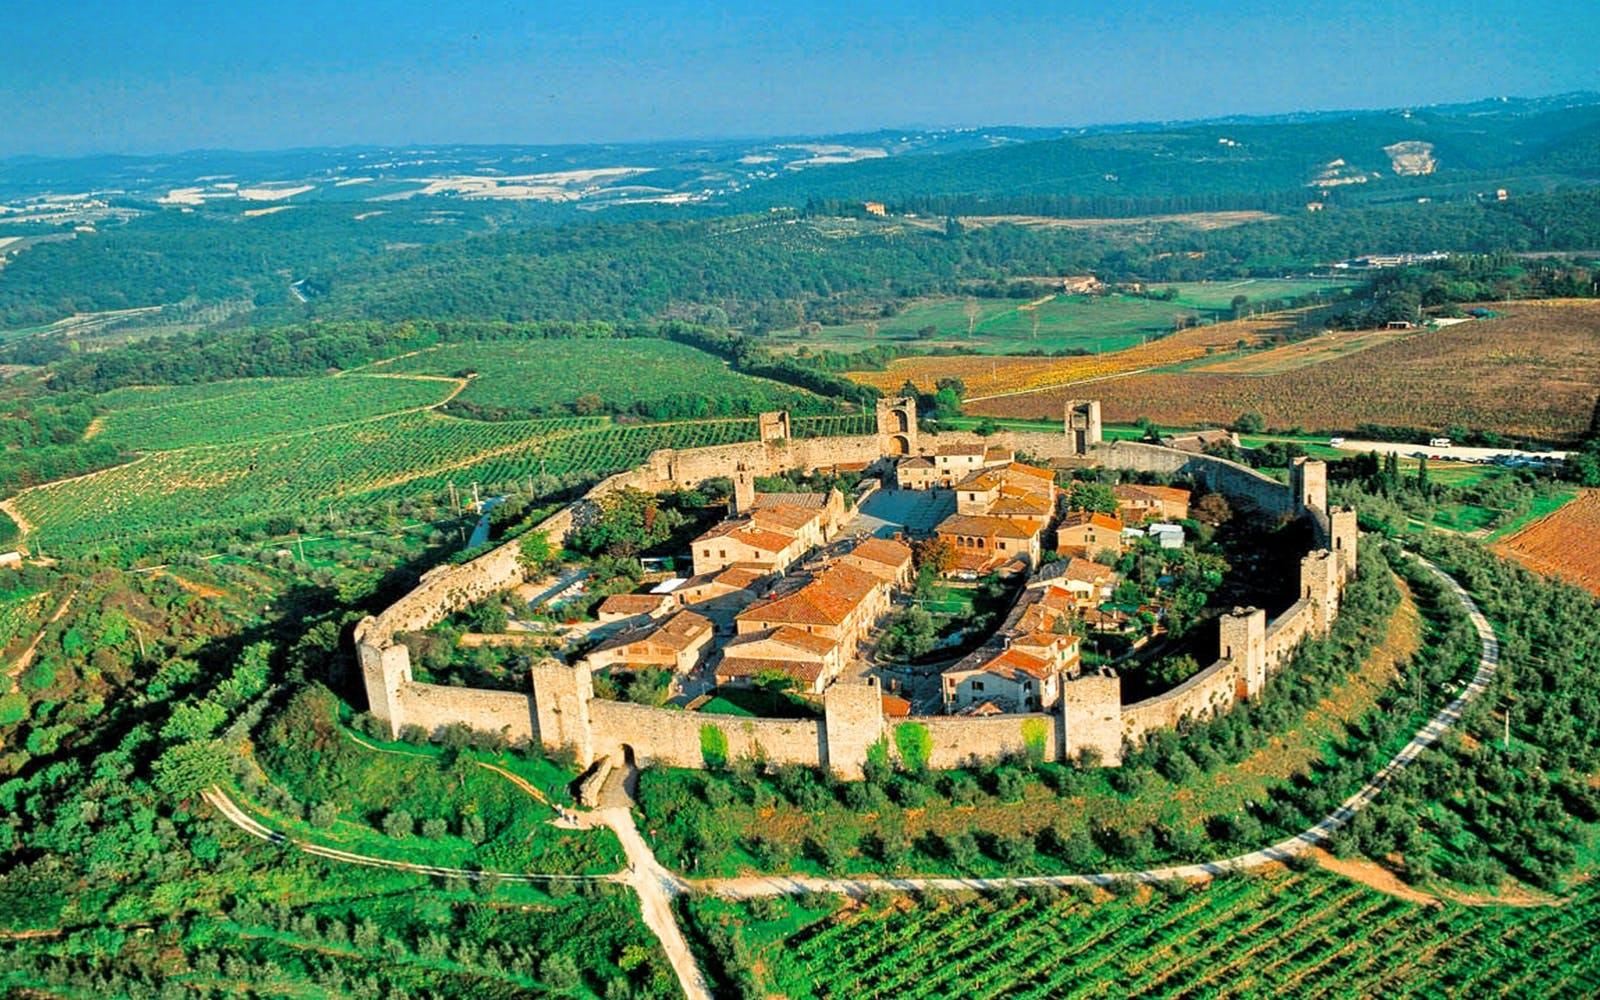 Full Day Tour of San Gimignanao, Siena, Monteriggioni and Pisa with Lunch and Transfers